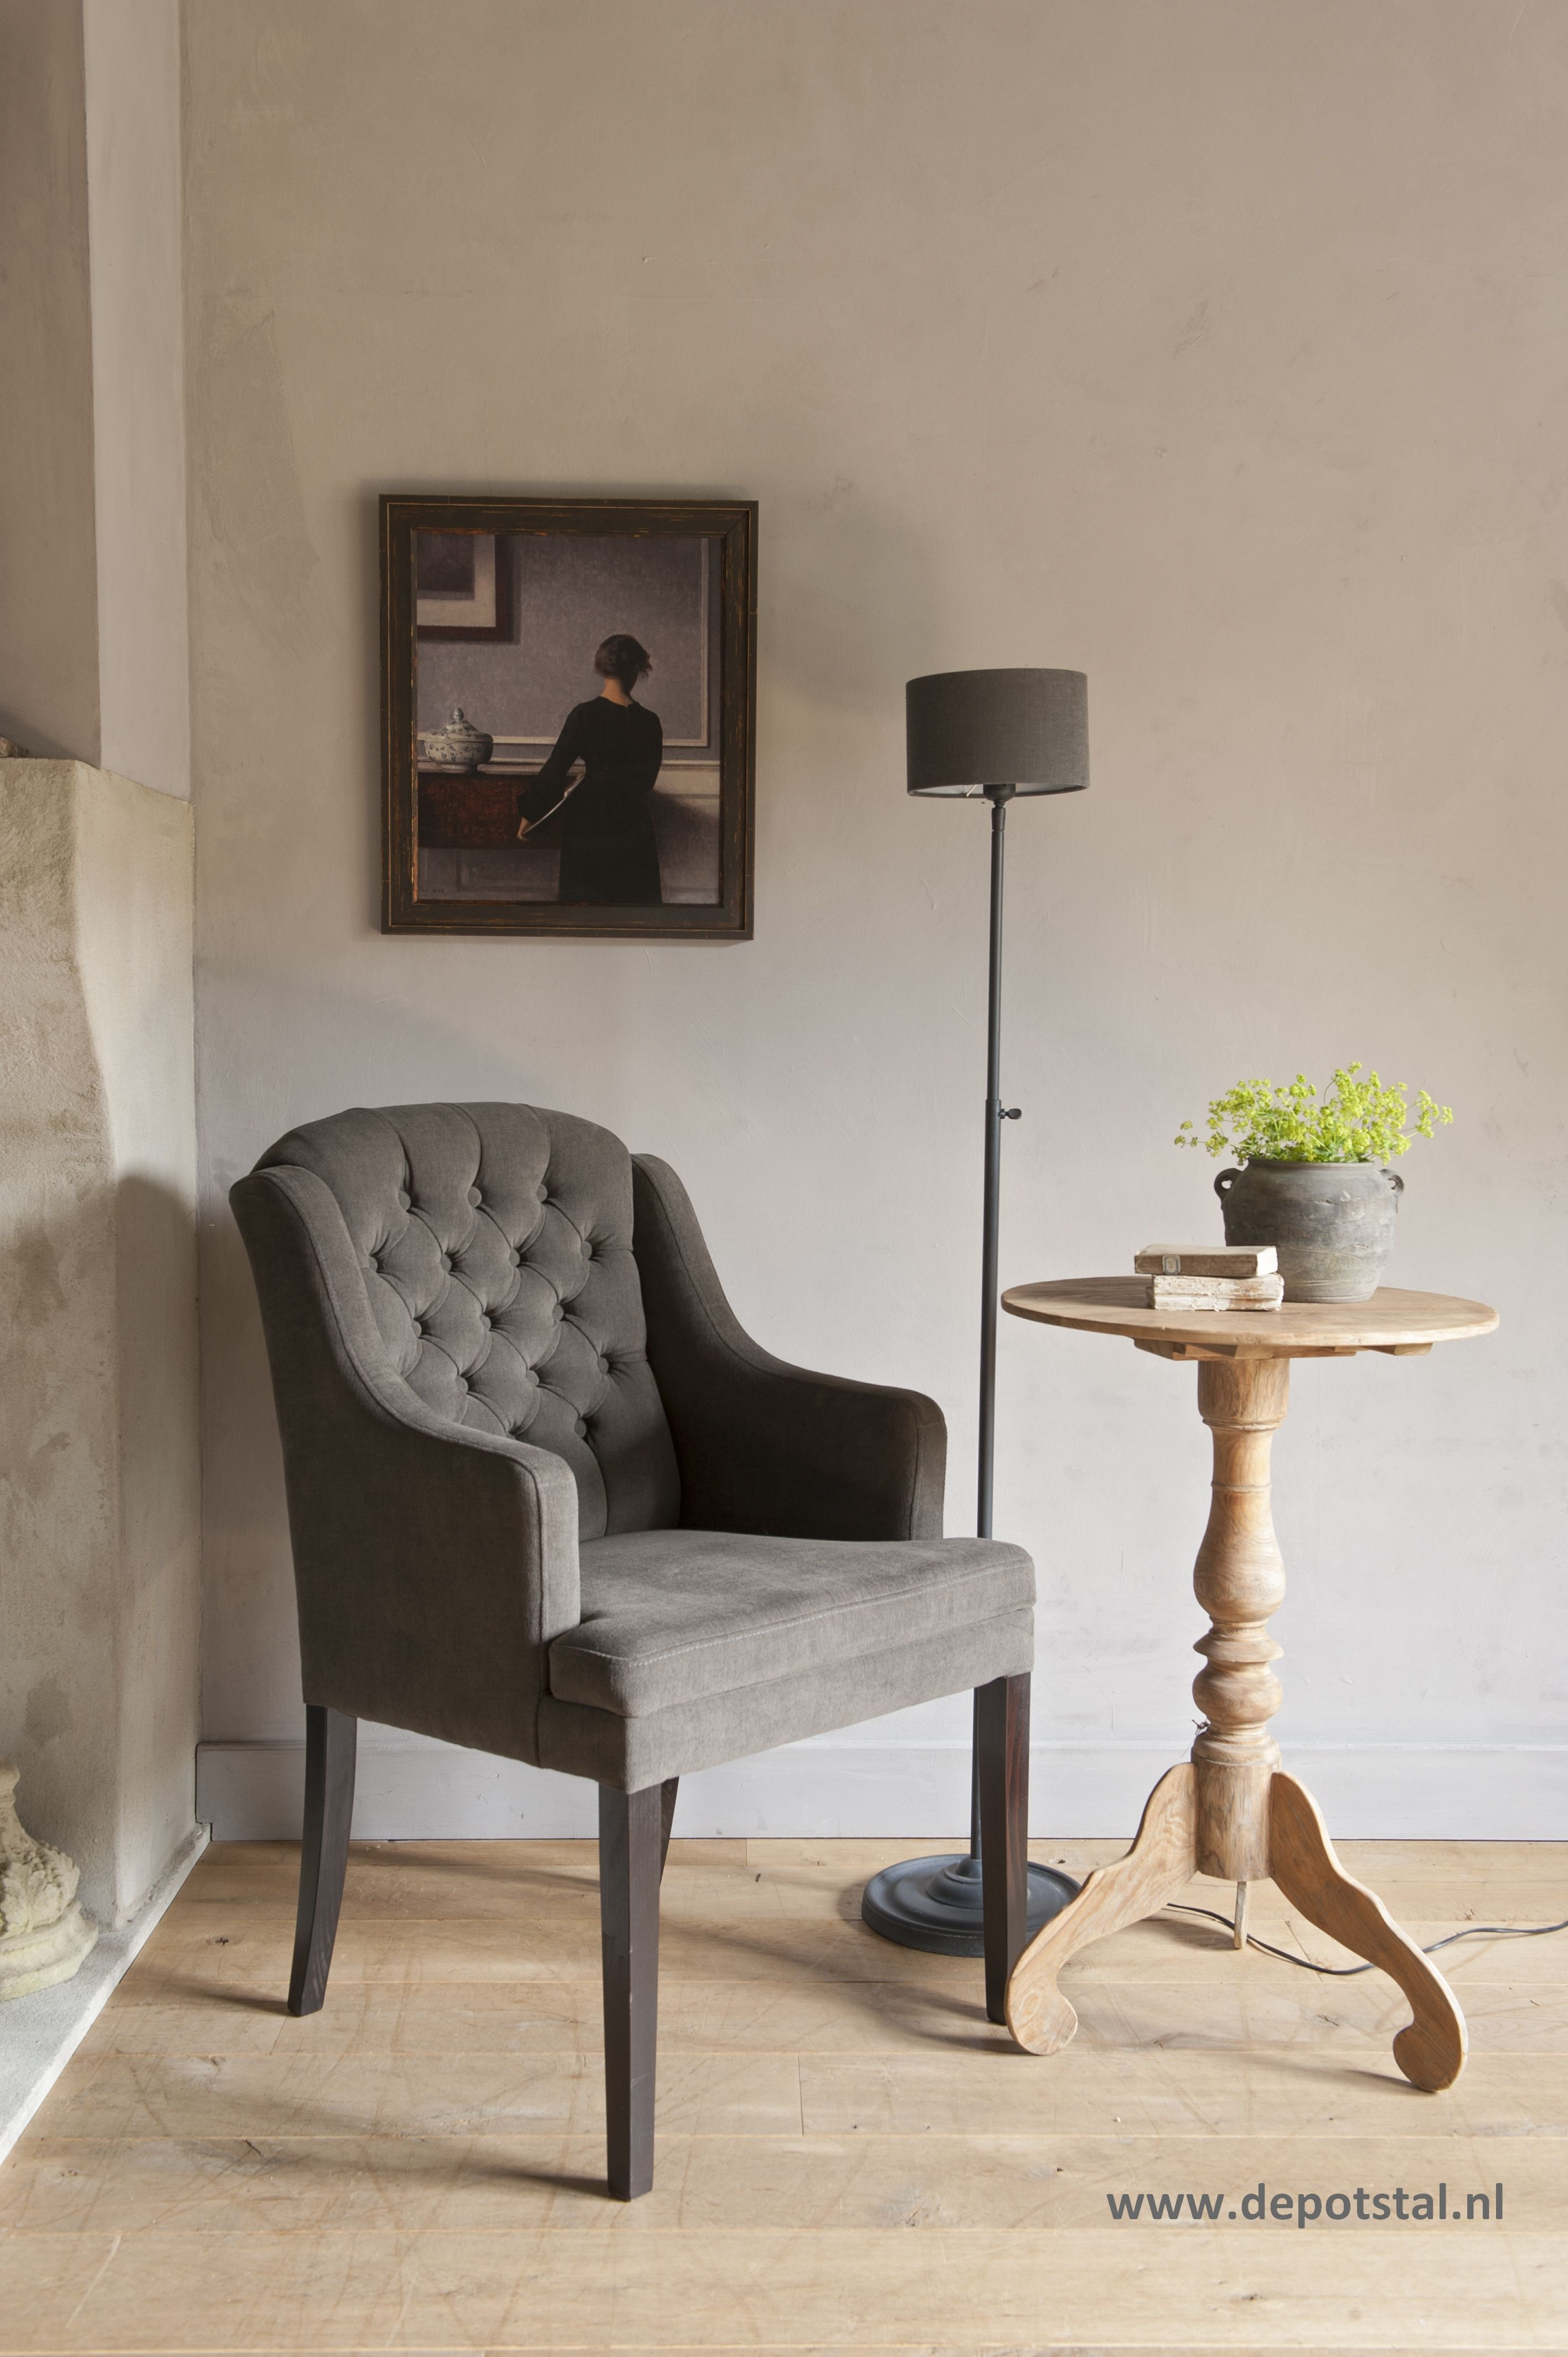 Depotstal valburg lighting furniture interiordesign for Landelijk wonen twente